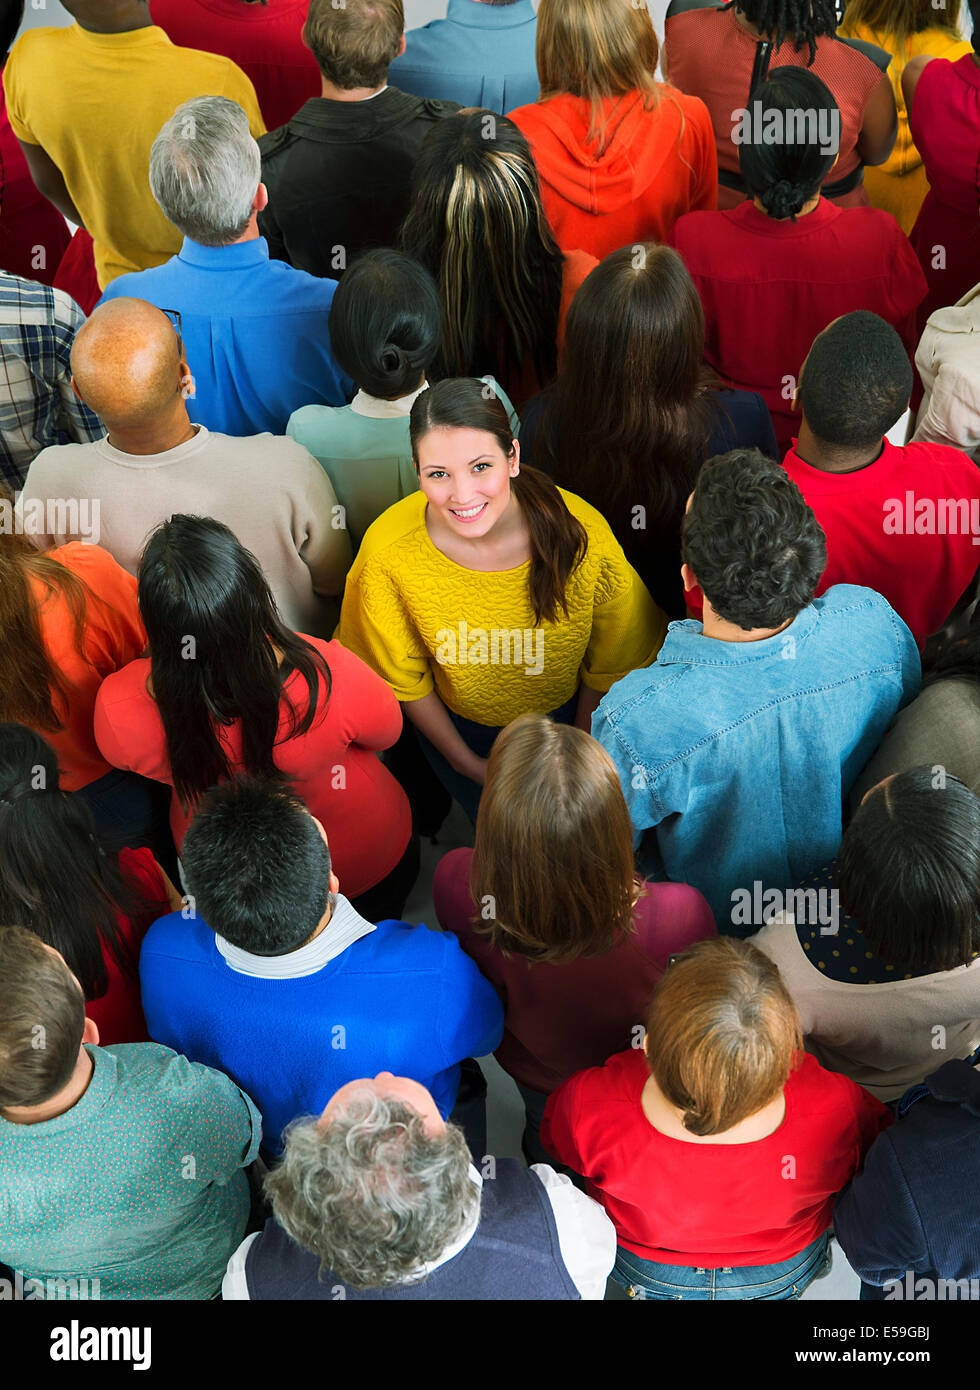 Smiling woman in crowd - Stock Image